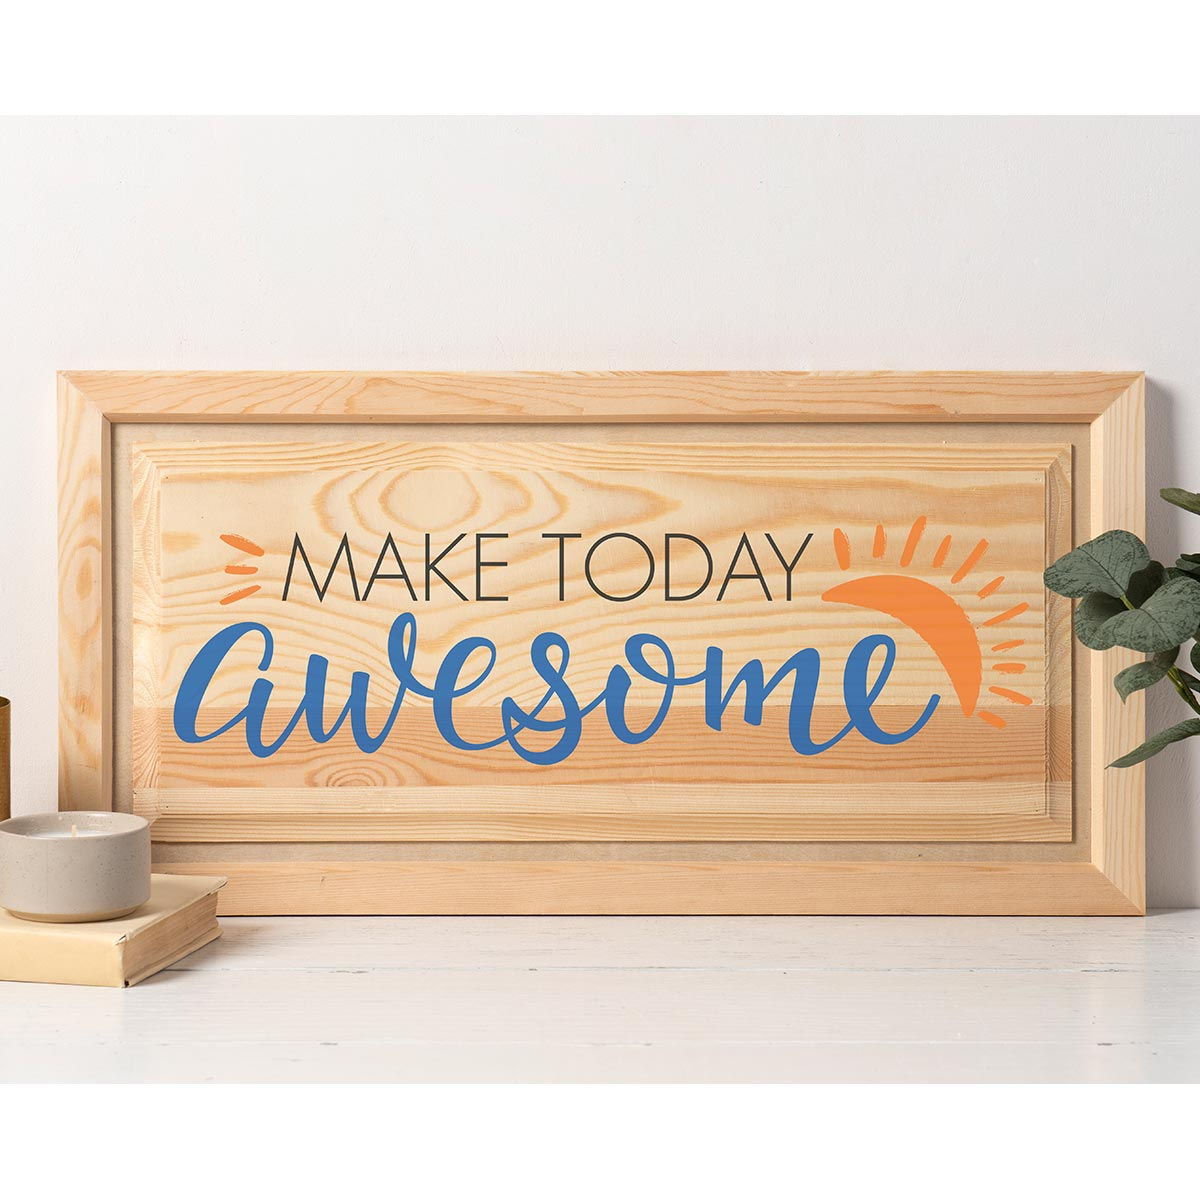 FolkArt ® Sign Shop™ Mesh Stencil - Make Today Awesome - 63385